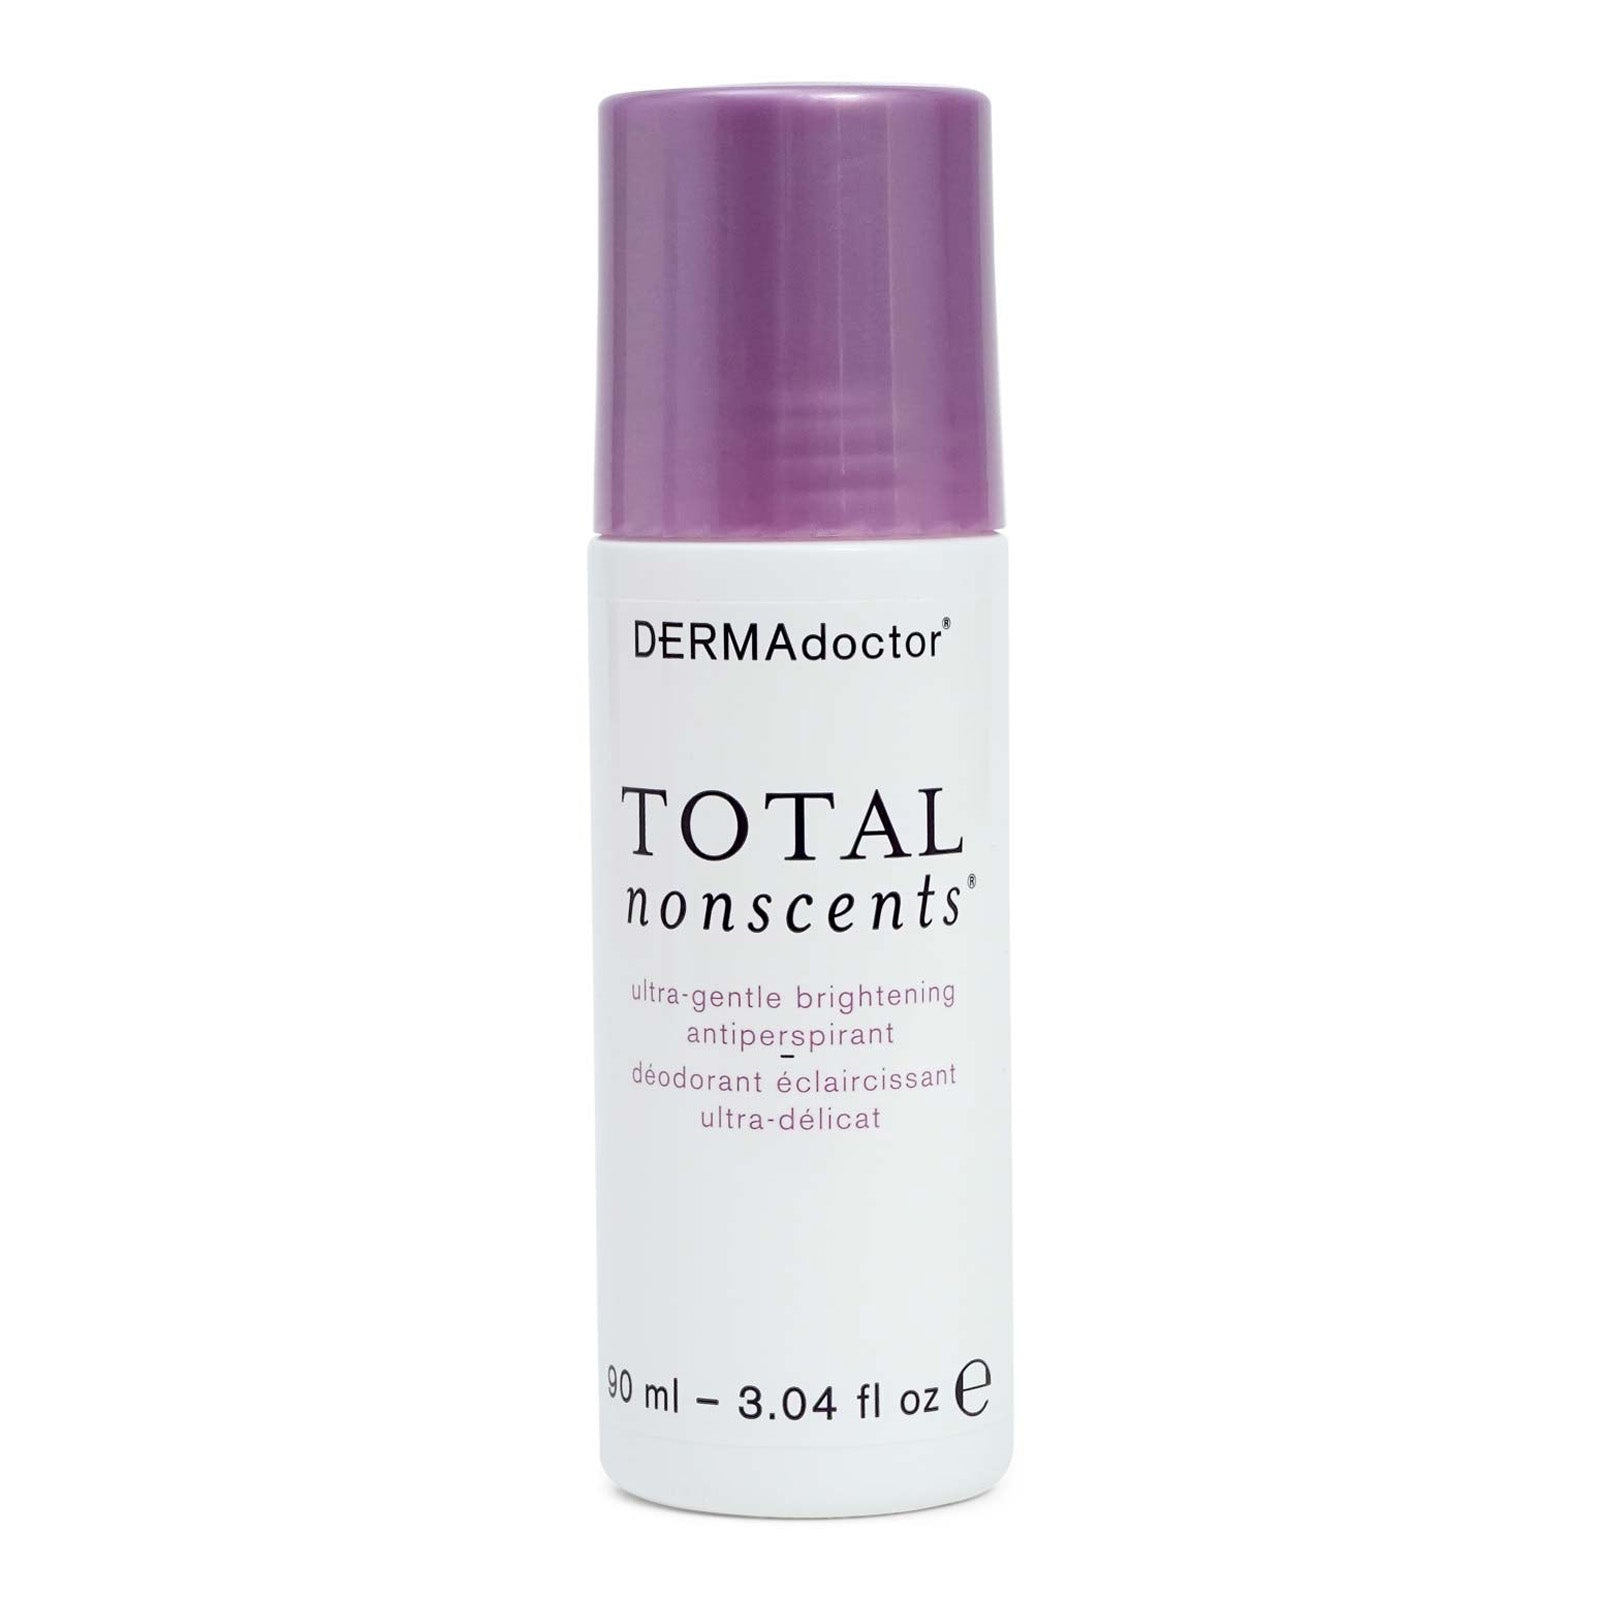 DermaDoctor Total Nonscents Ultra Gentle Brightening Antiperspirant - Protects against wetness and odor, great for uneven skin tone. (12/cs)